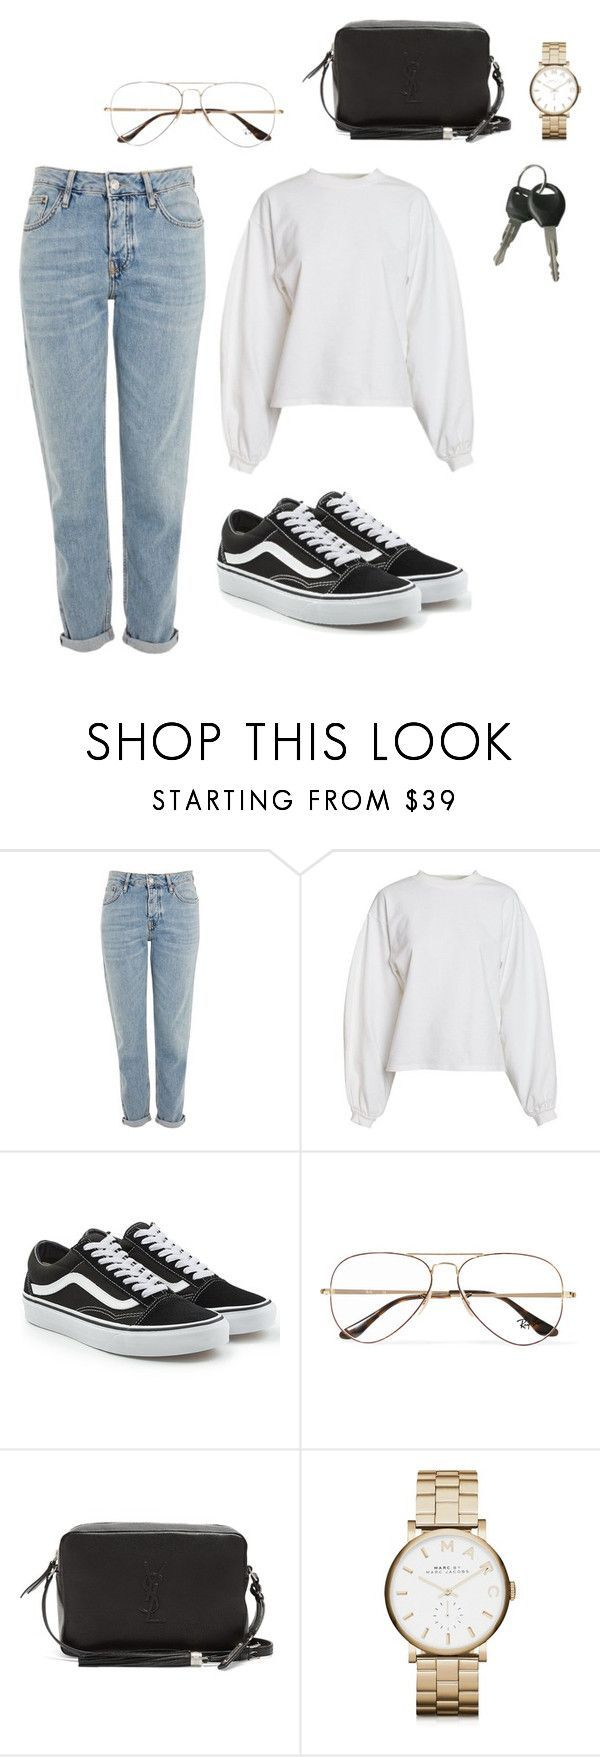 """Tues, 13th Sep."" by ilikemockingjays ❤ liked on Polyvore featuring Topshop, NLY Trend, Vans, Ray-Ban, Yves Saint Laurent and Marc by Marc Jacobs"